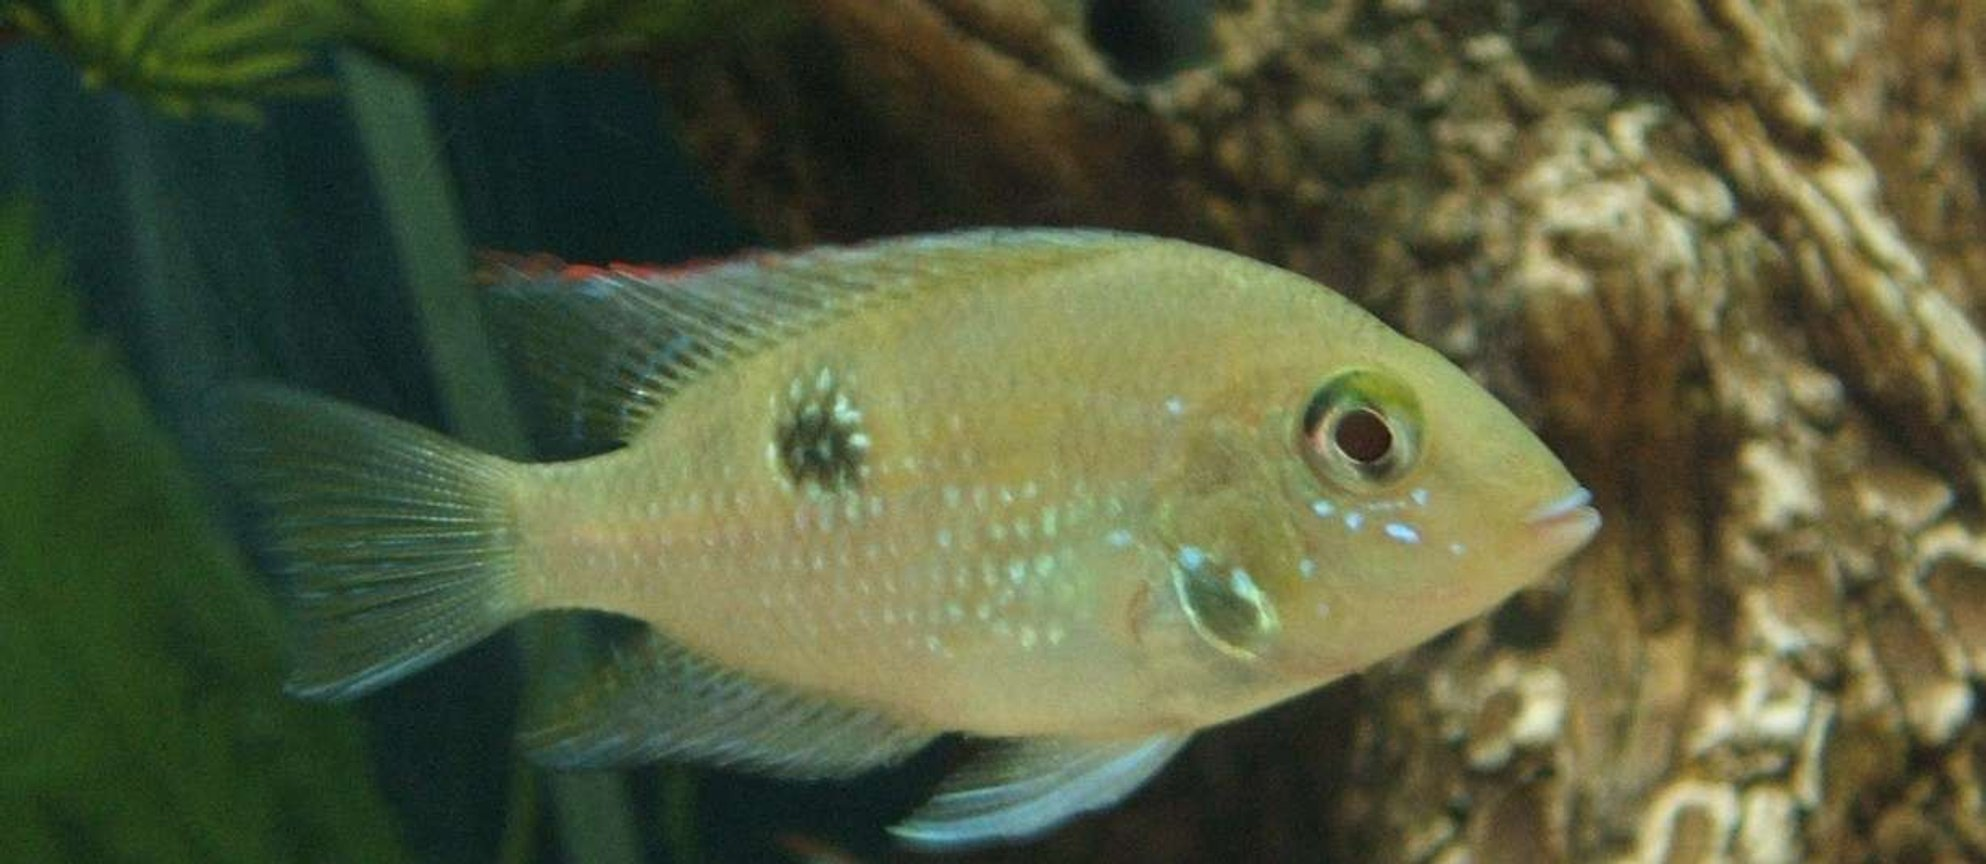 freshwater fish - thorichthys meeki - firemouth cichlid stocking in 75 gallons tank - Firemouth Cichlid